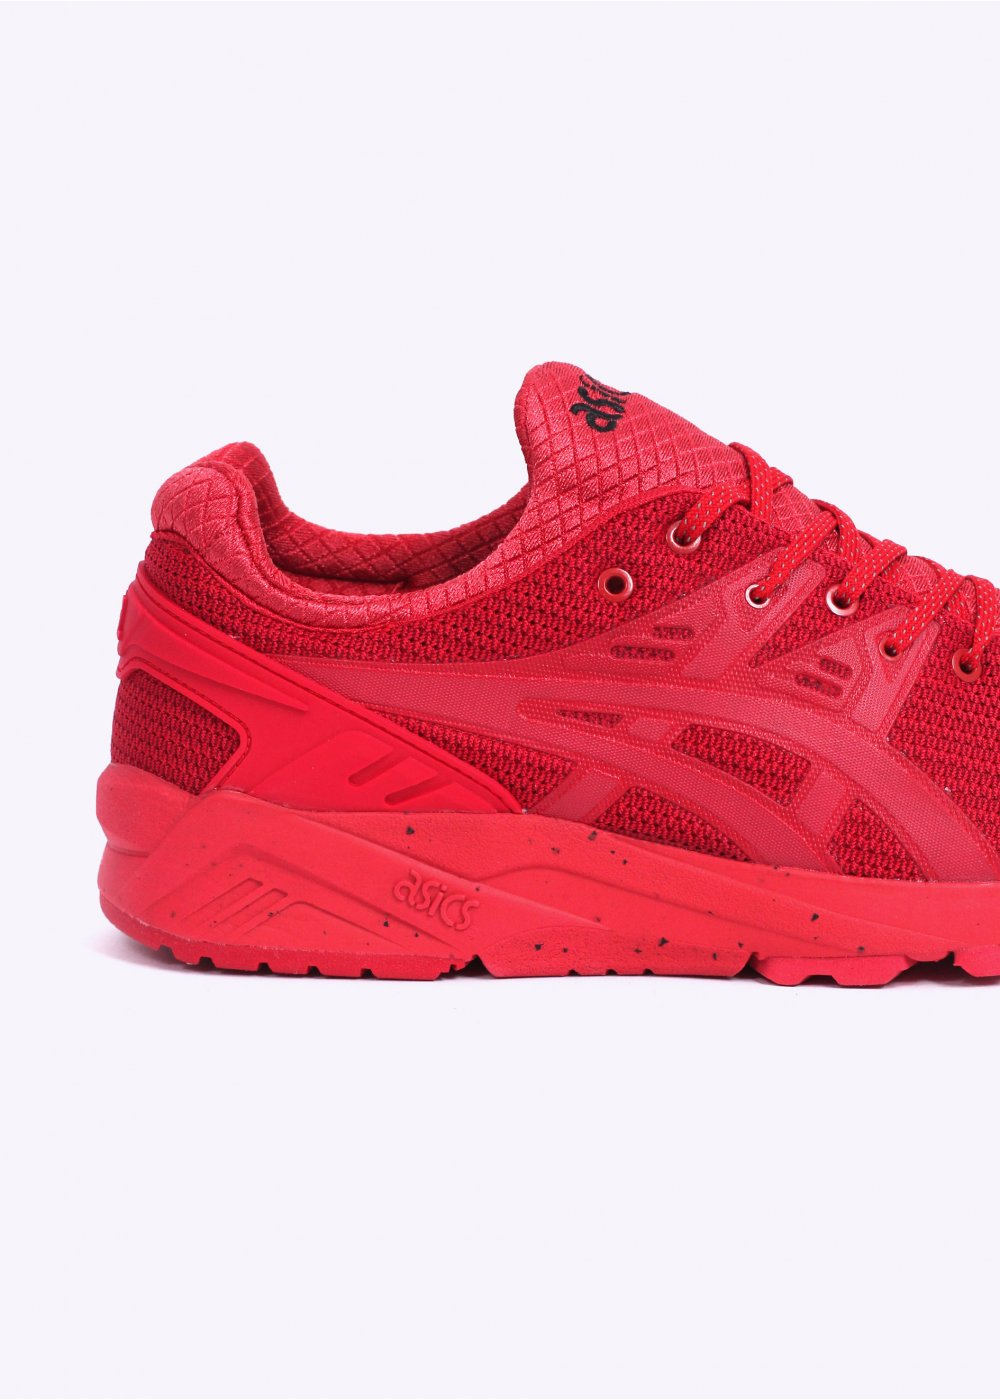 low priced 06697 5736c Gel-Kayano Evo Trainers Tech Pack - Red